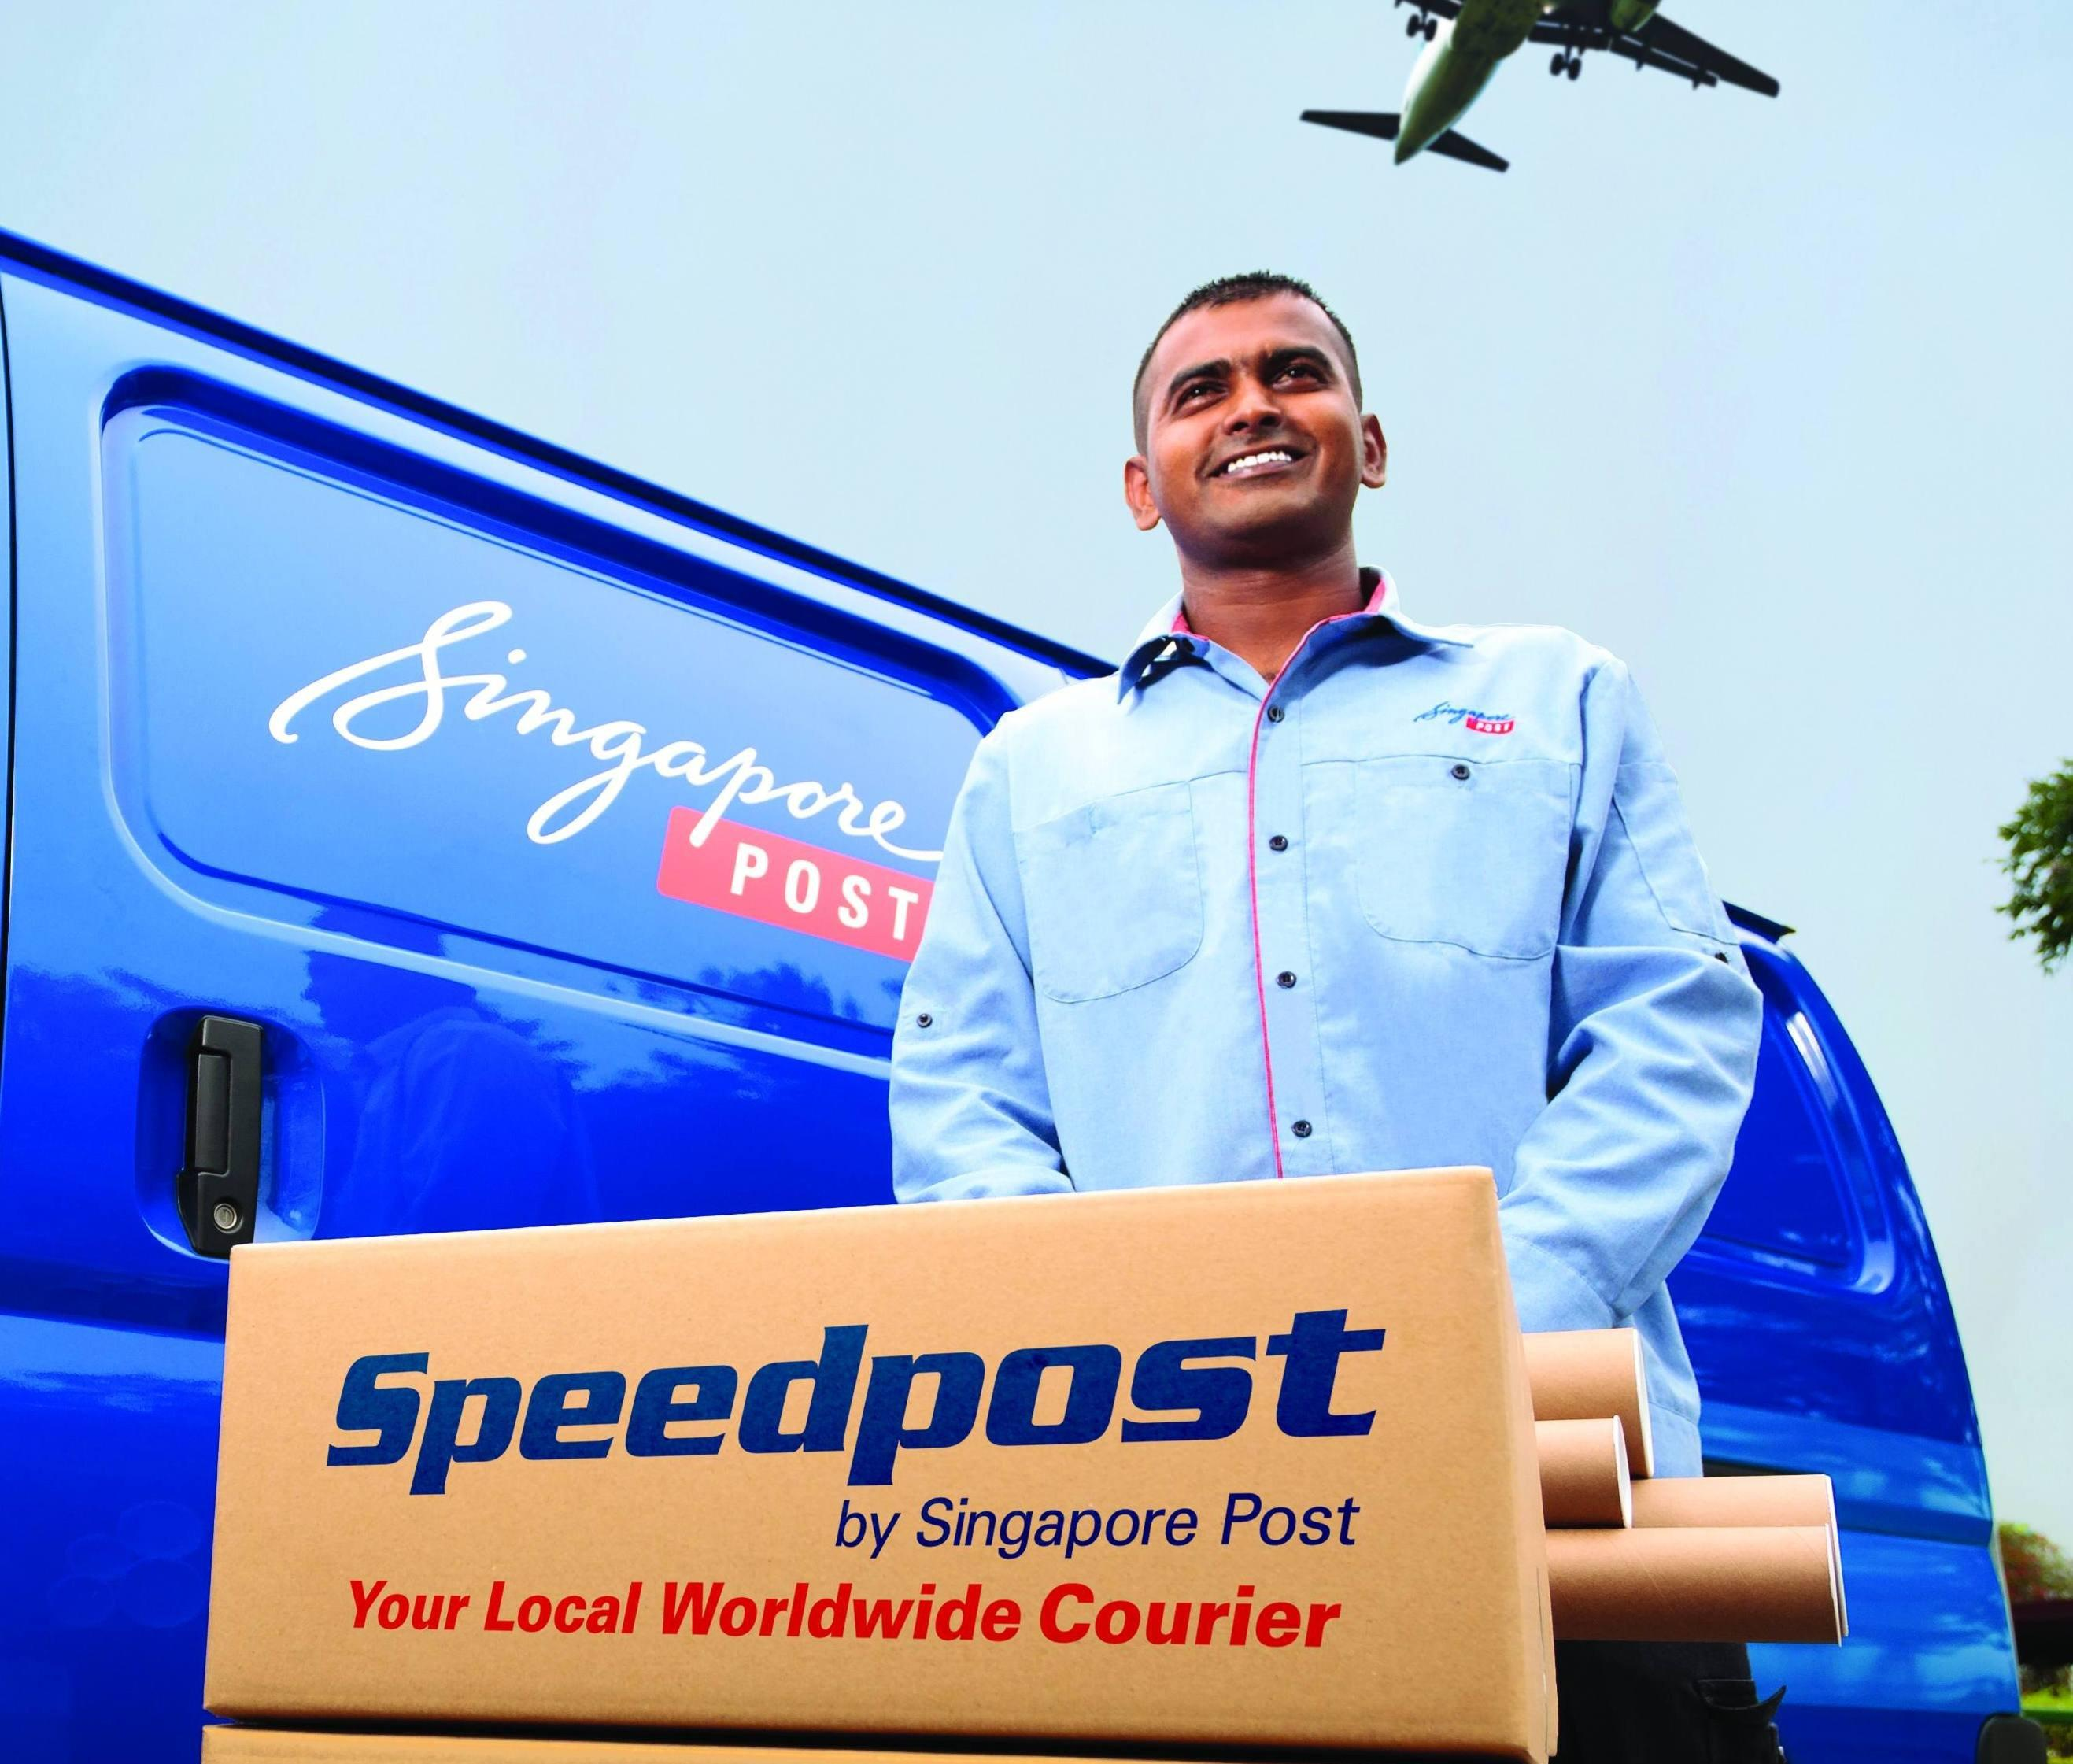 Signed, sealed, delivered: SingPost unveils world's first drone mail delivery system